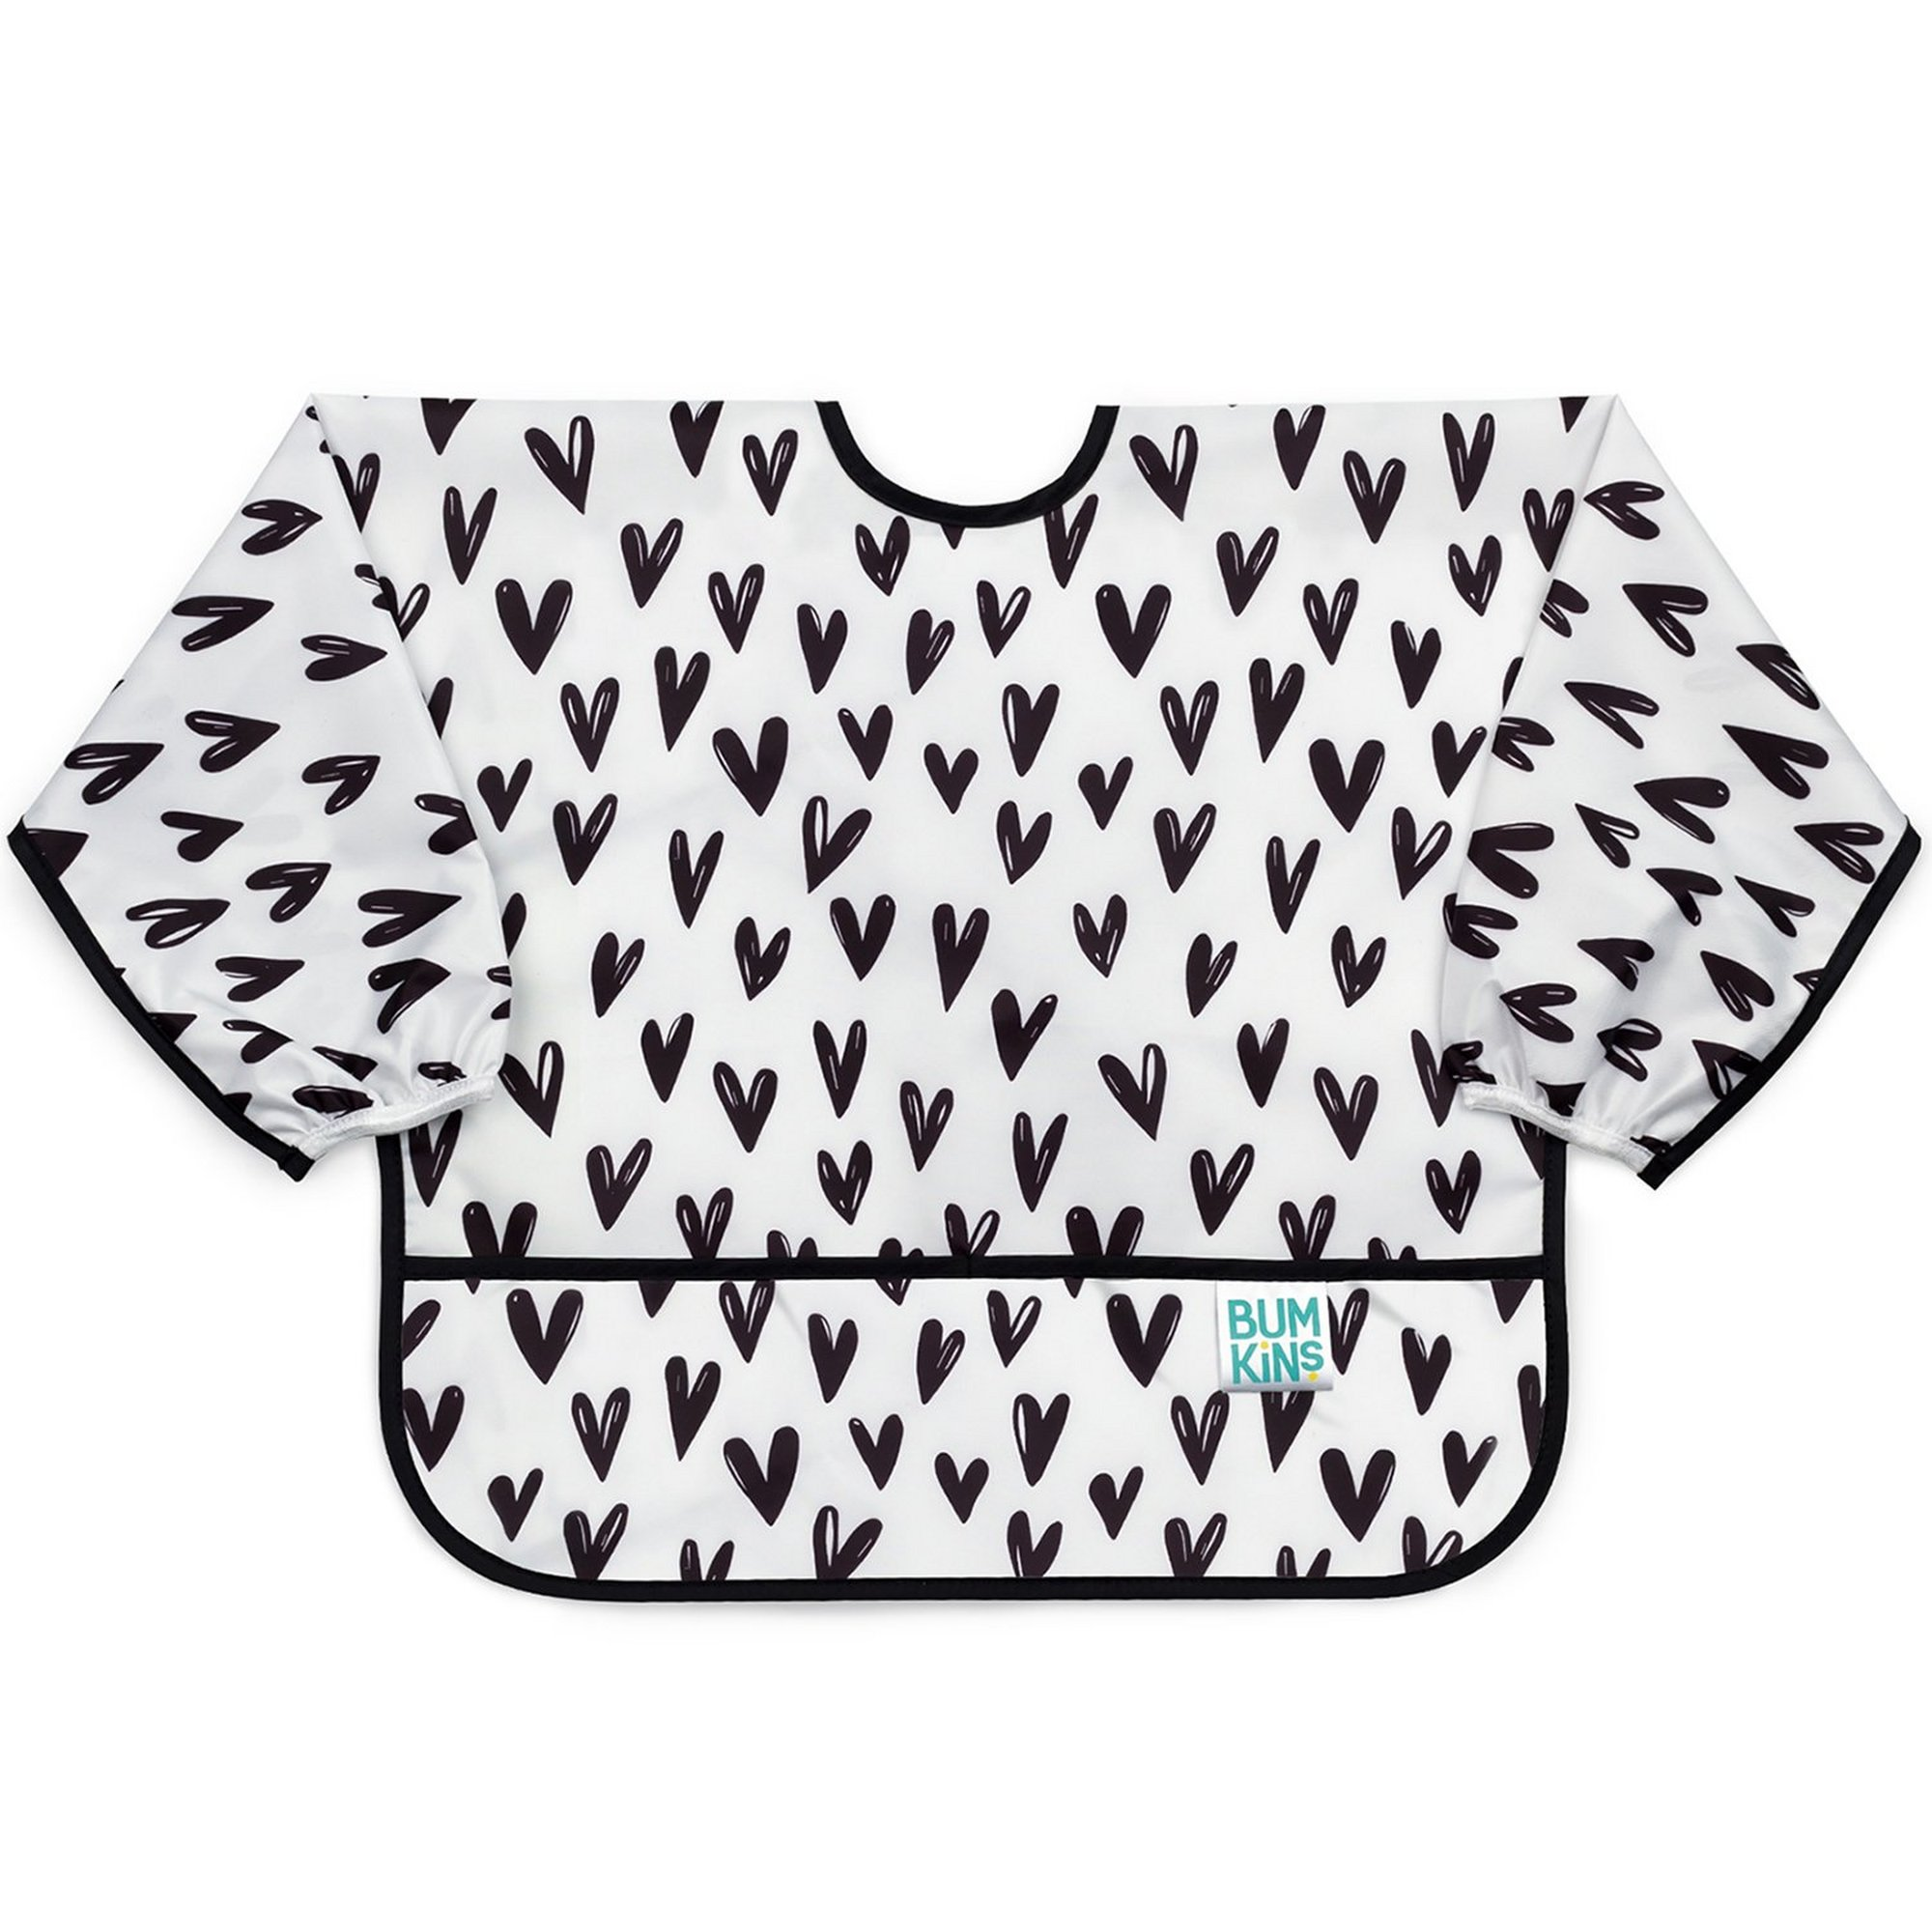 Image of Hippychick Bumkins Sleeved Bib - Hearts